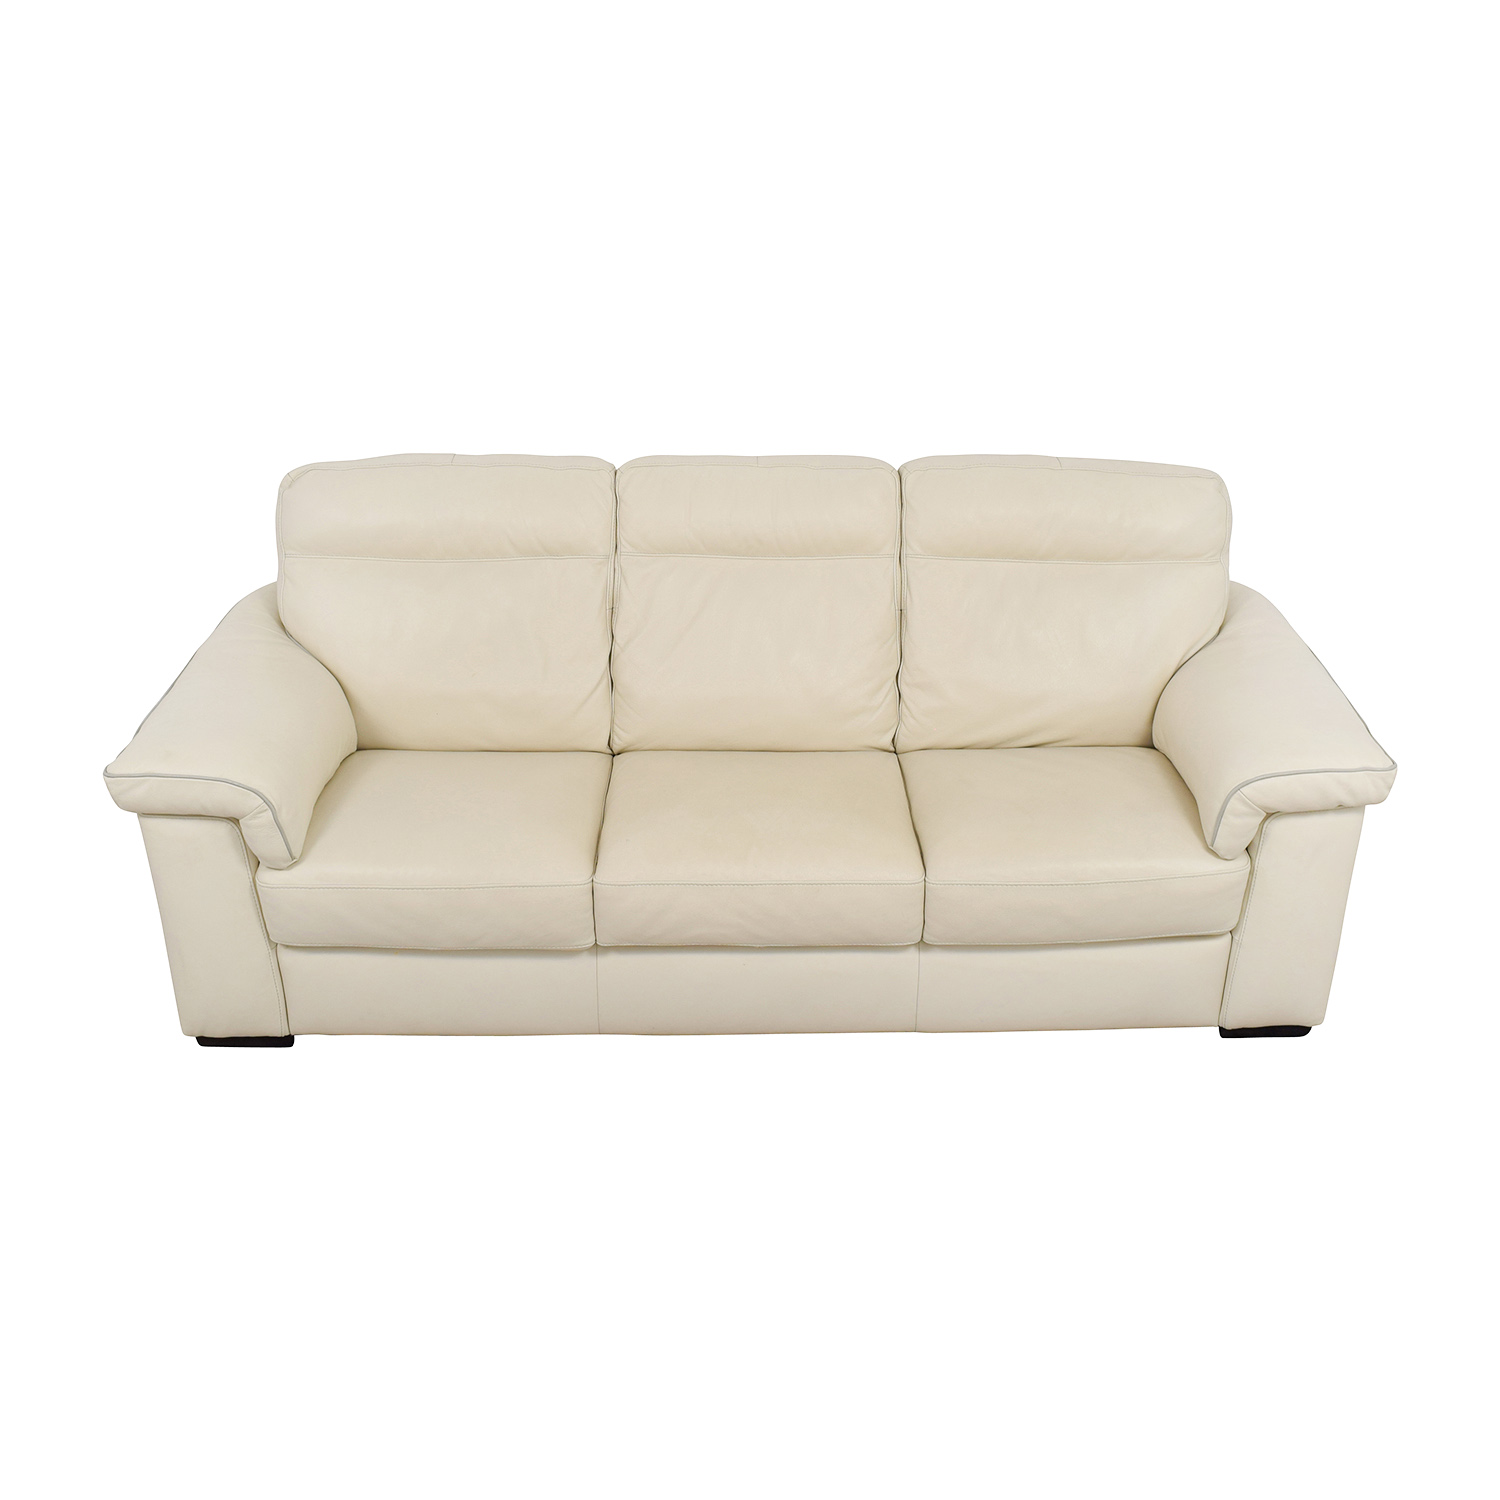 crate and barrel verano sofa smoke beds under 200 69 off simone daybed